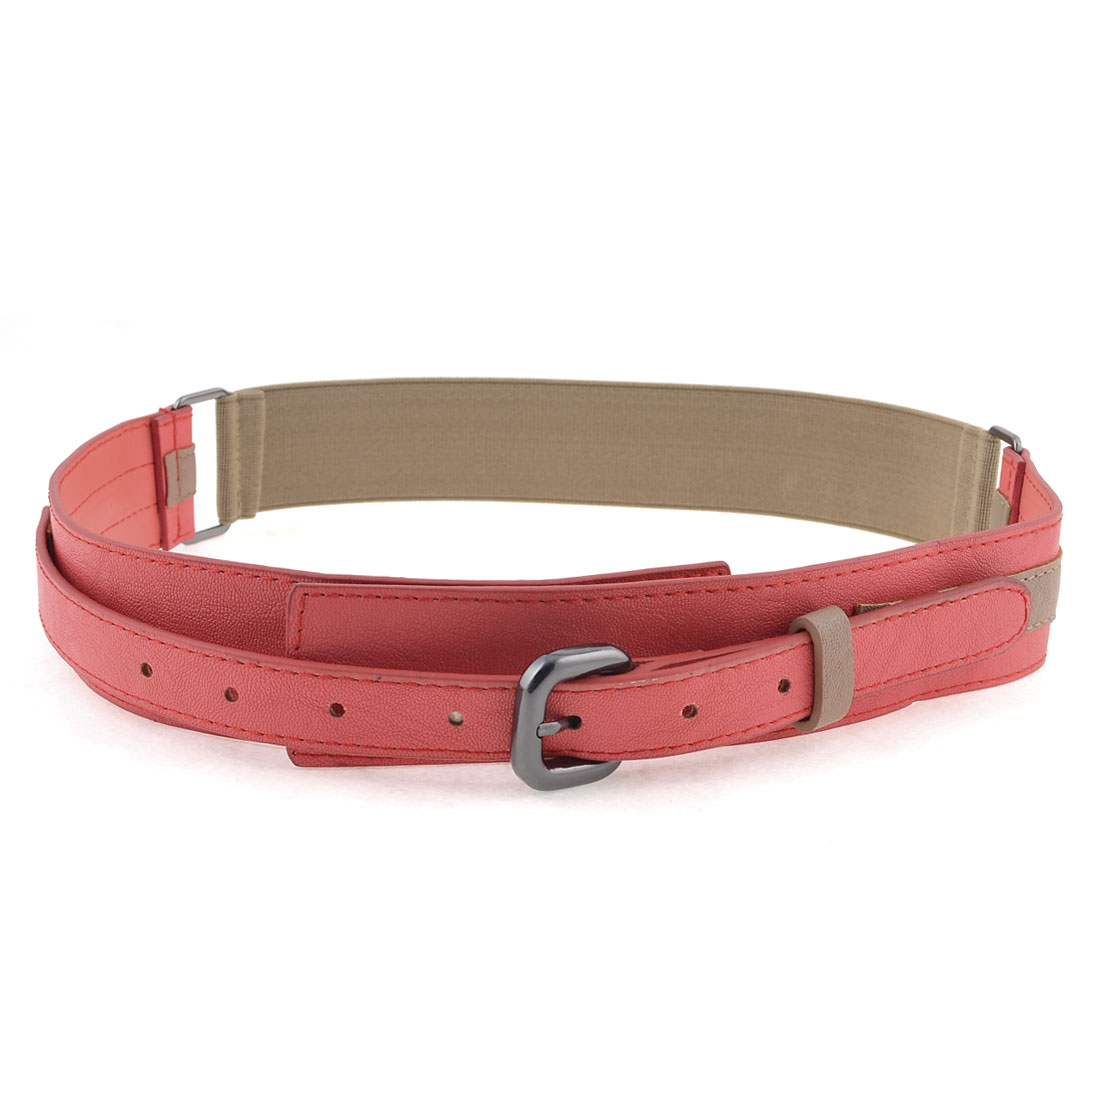 Lady Red Faux Leather Single Pin Buckle Khaki Elastic Cinch Waist Belt